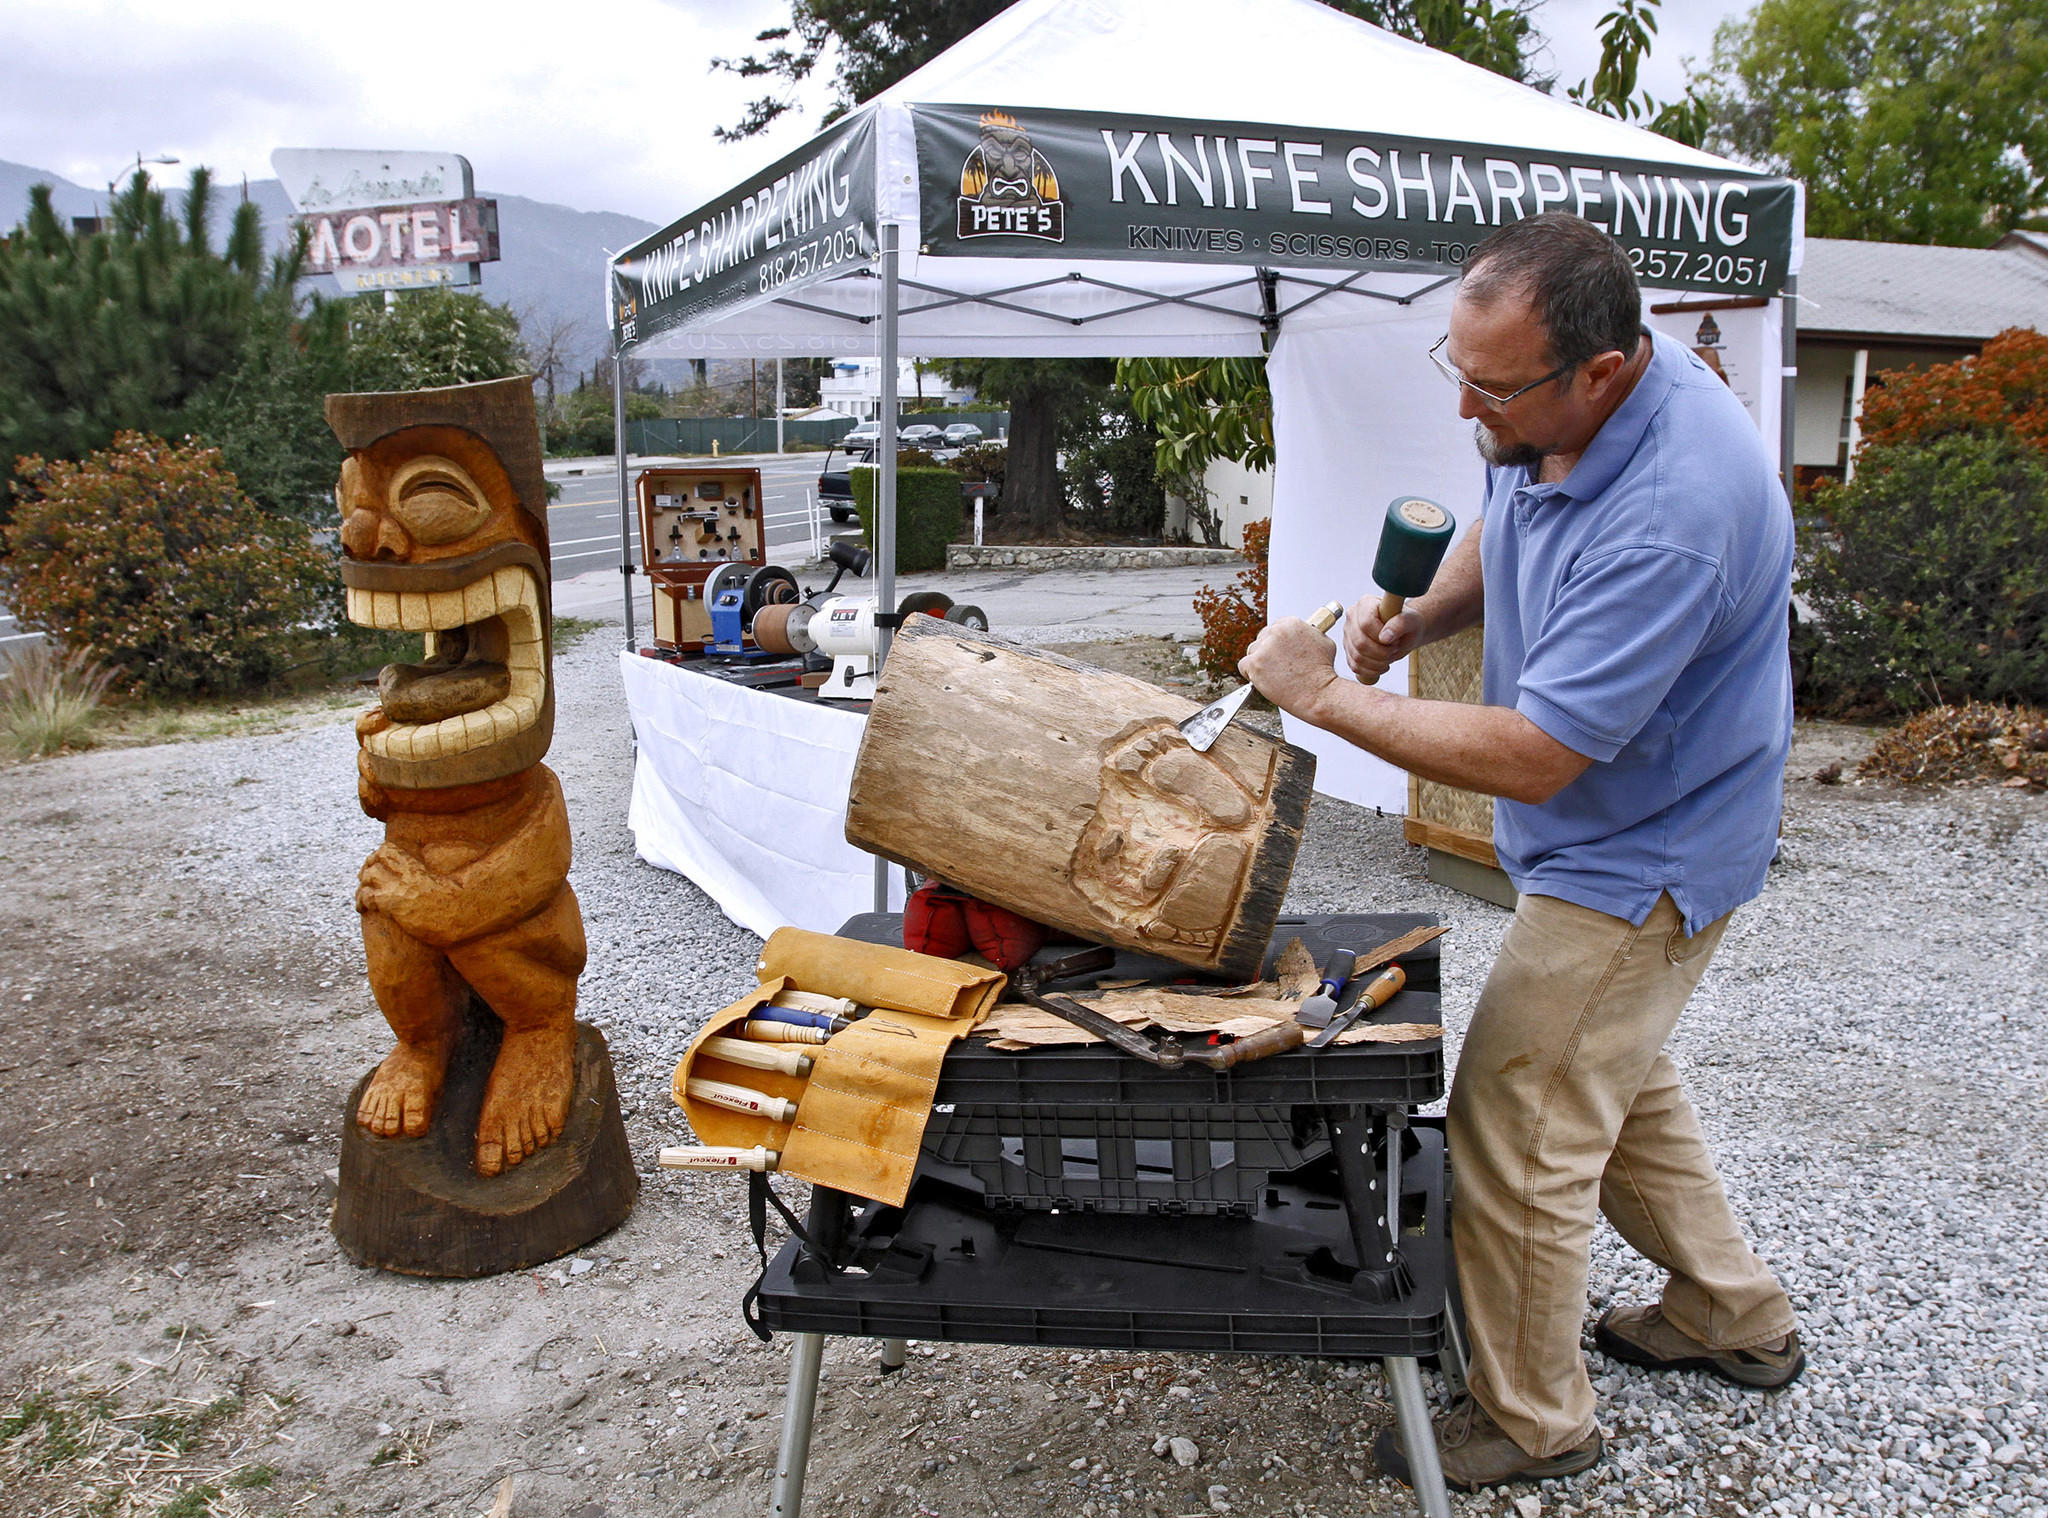 When no customers are around, Peter Gick carves out some tikis at his knife sharpening stand on Foothill Blvd. at Briggs Ave. in his home town of La Crescenta on Wednesday, Feb. 26, 2014. Gick also has his stand at the Glendale Farmer's Market on Thursdays.